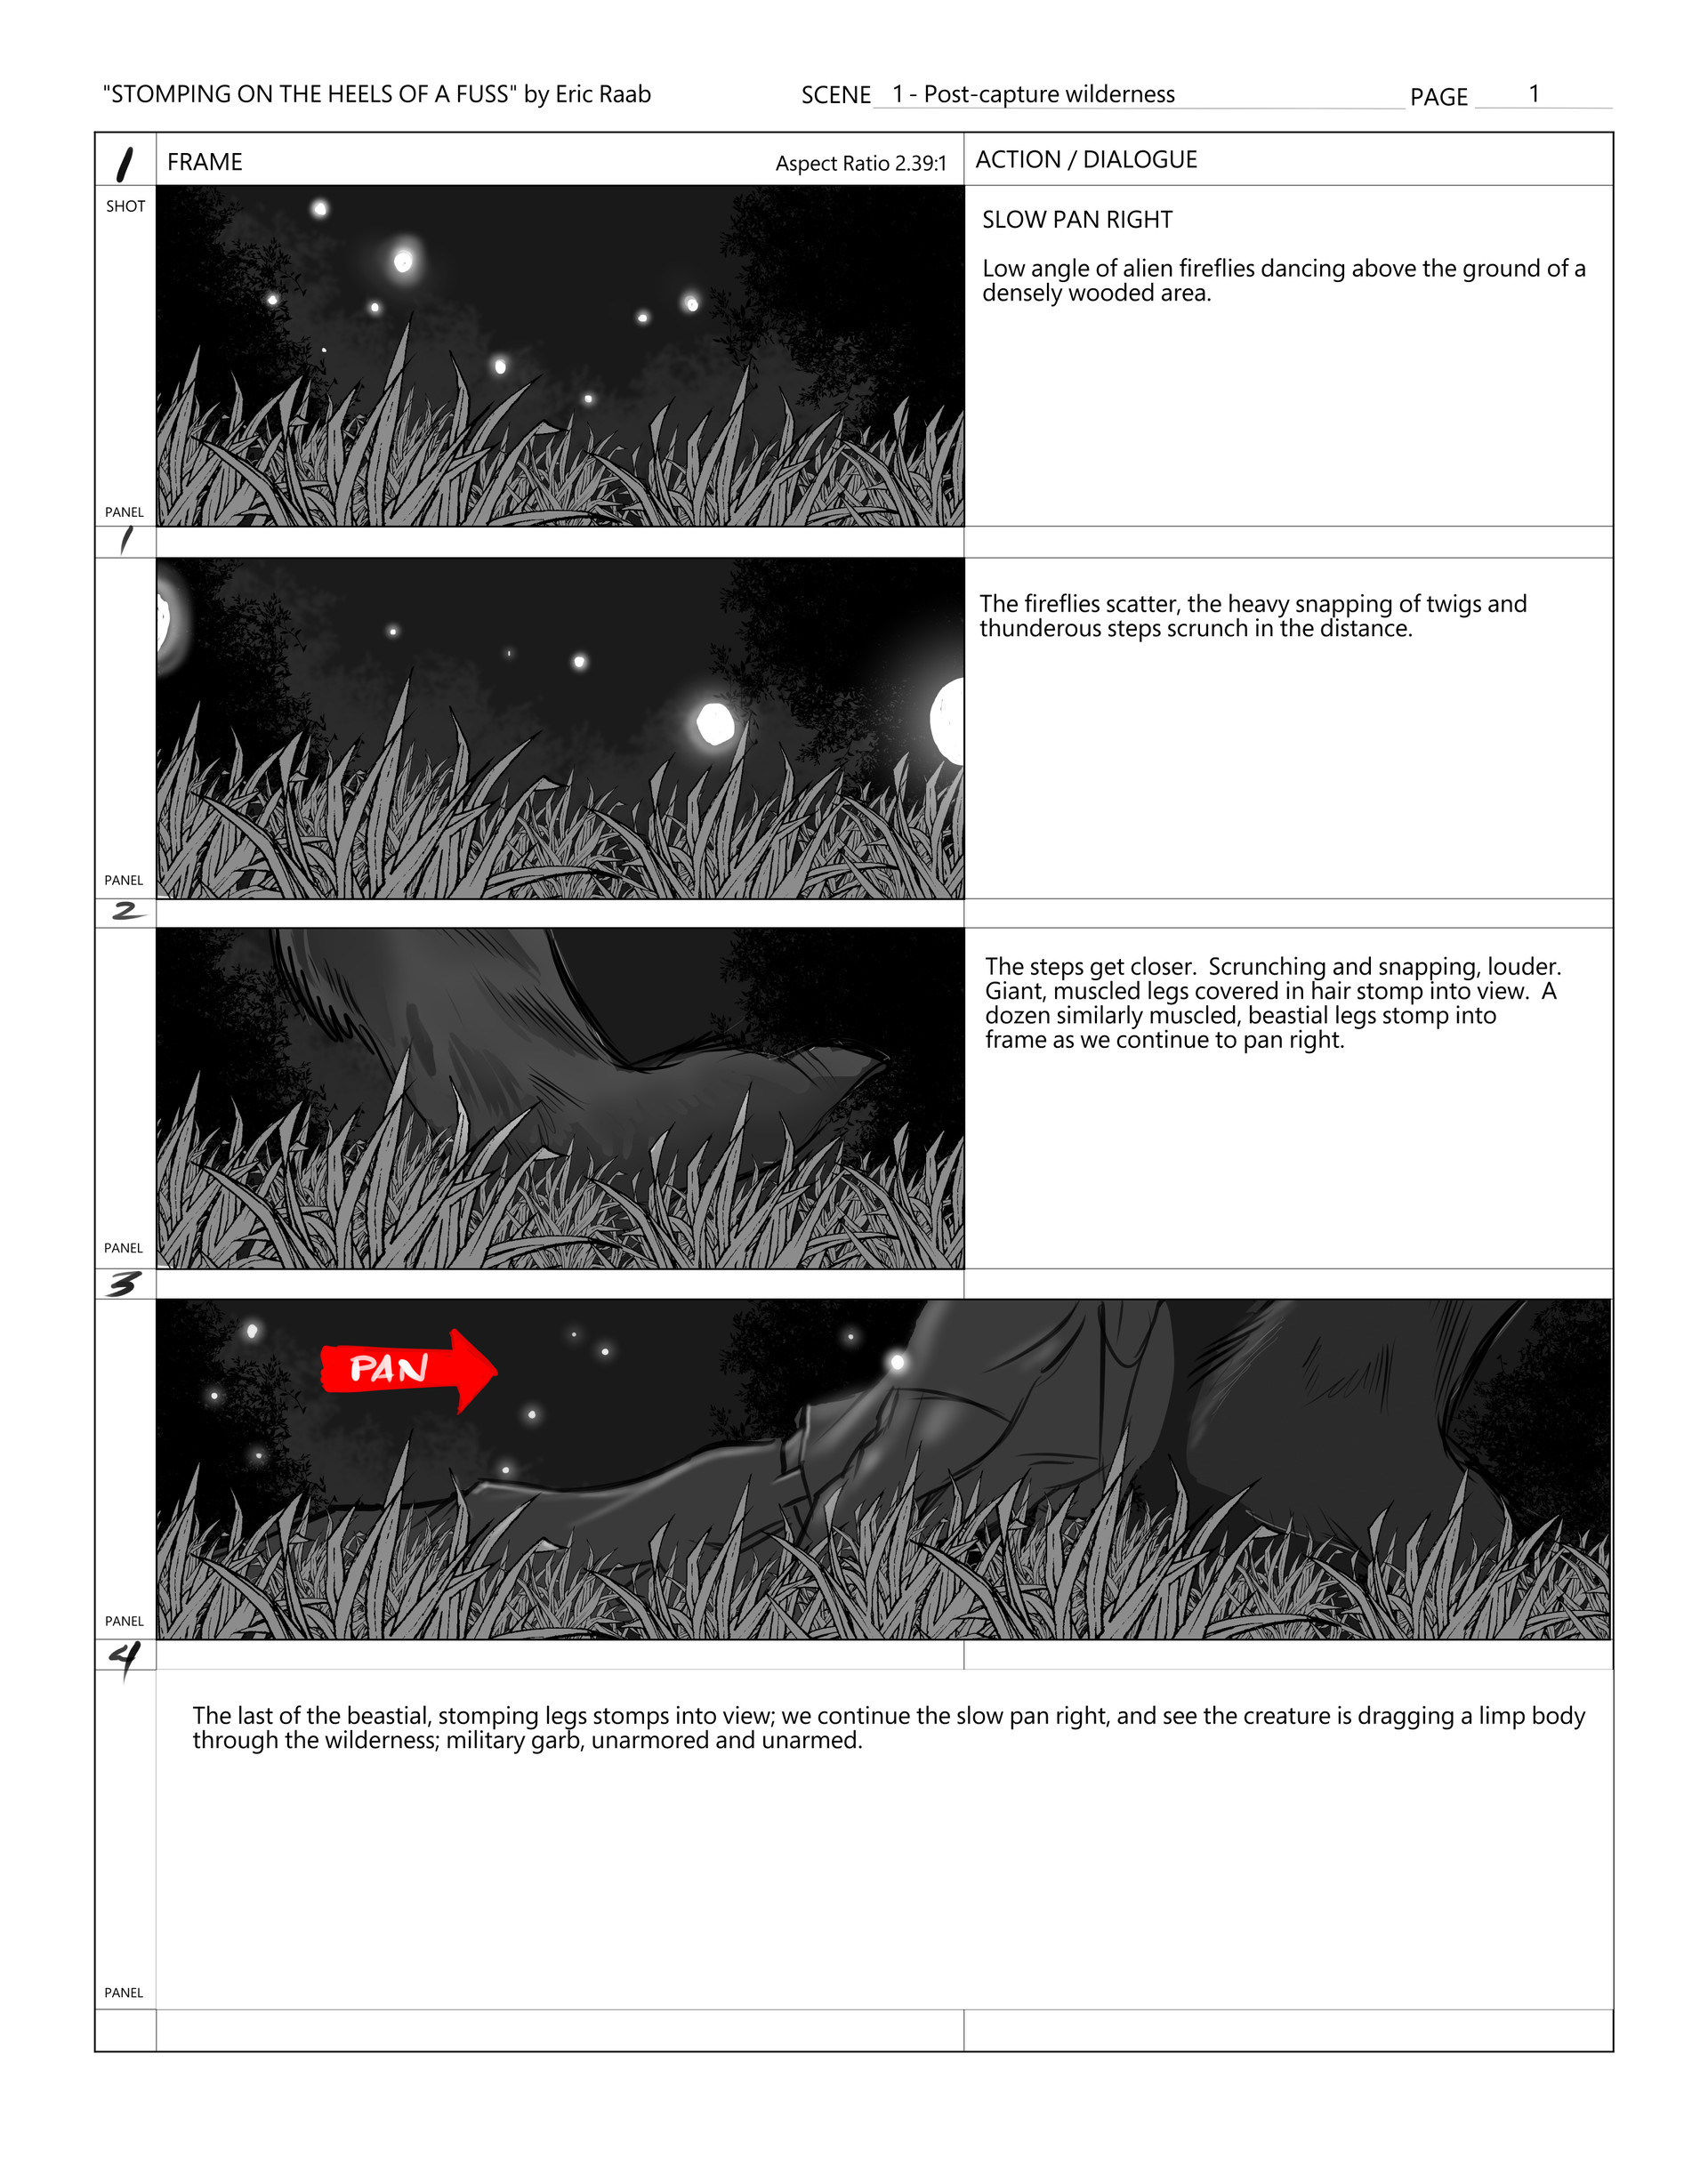 Chx welch fuss storyboards 001